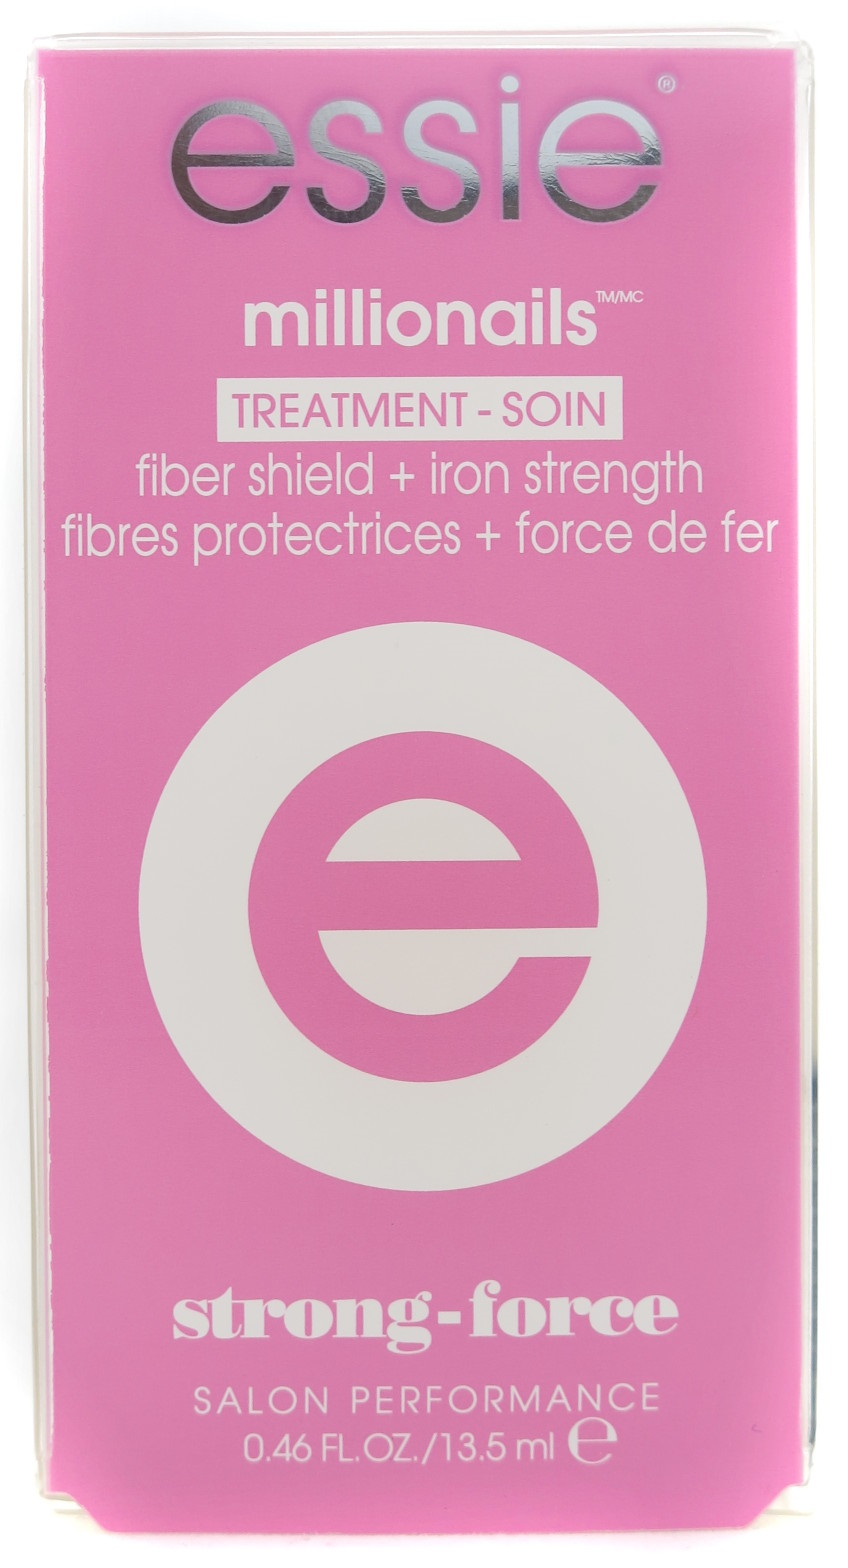 Essie Nail Treatments - Assorted